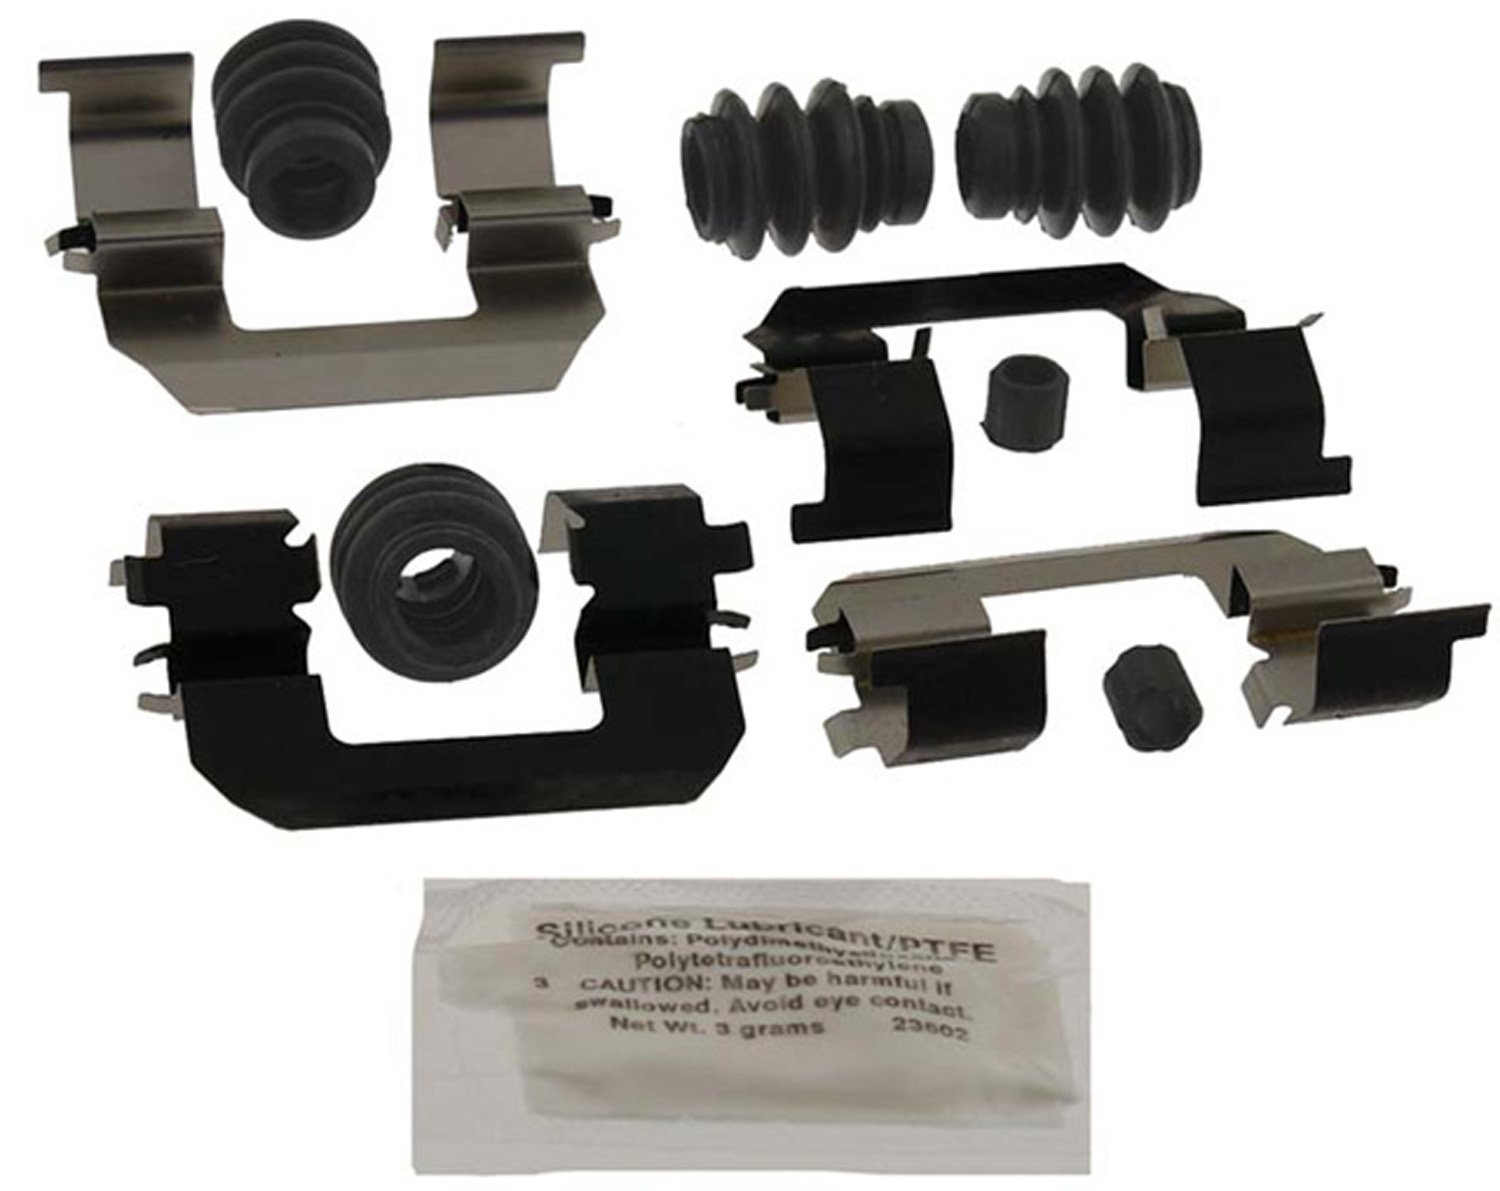 ACDelco 18K1989X Professional Front Disc Brake Caliper Hardware Kit with Clips, Seals, Bushings, and Lubricant